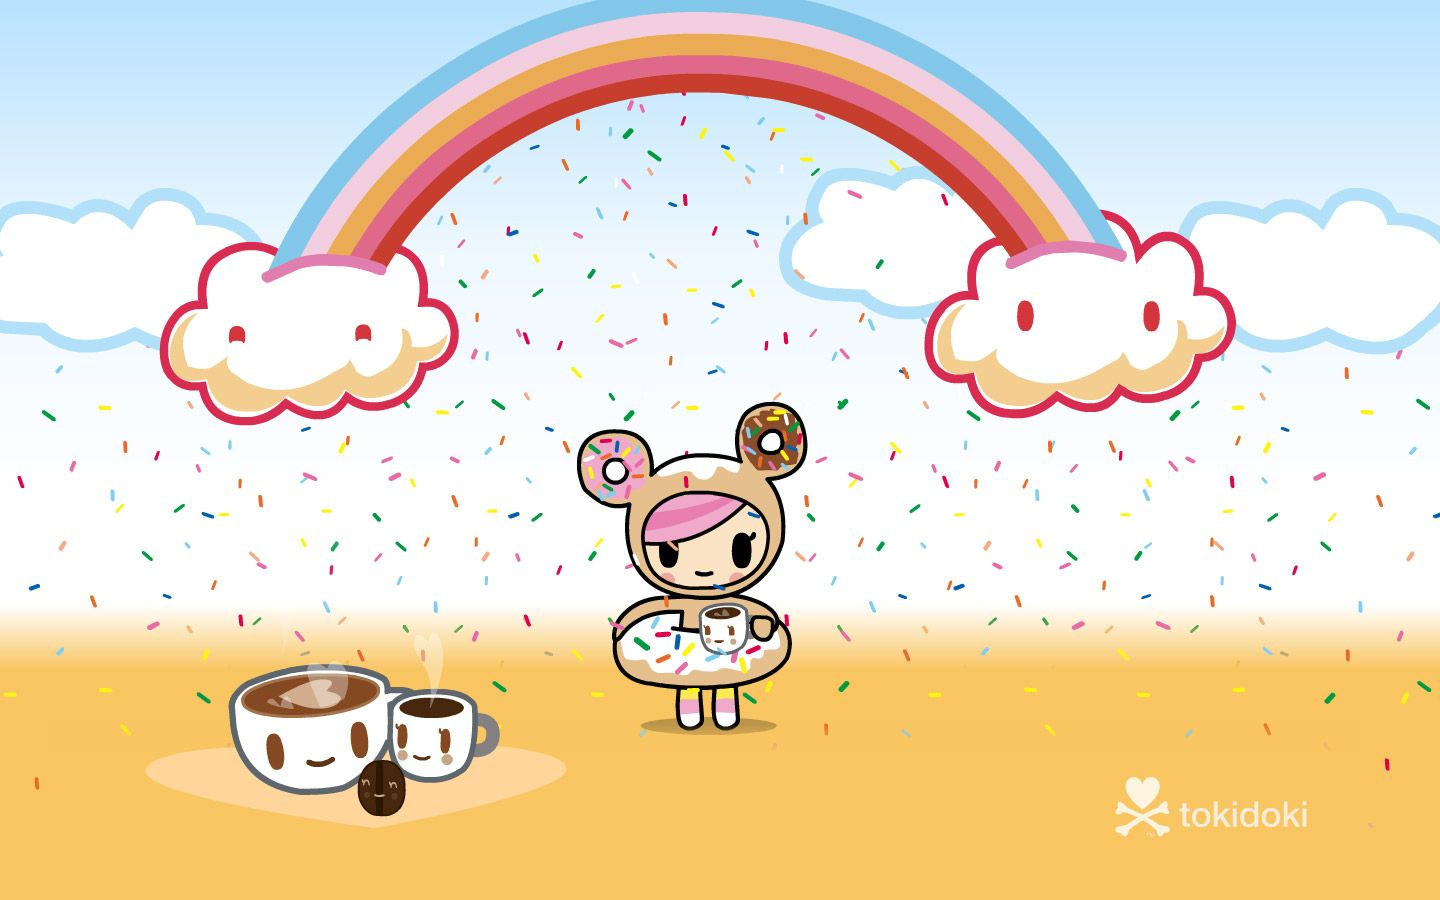 images-about-tokidoki-on-Pinterest-Toy-story-Birds-and-1920×1080-Tokidoki-desktop-W-wallpaper-wp3607312